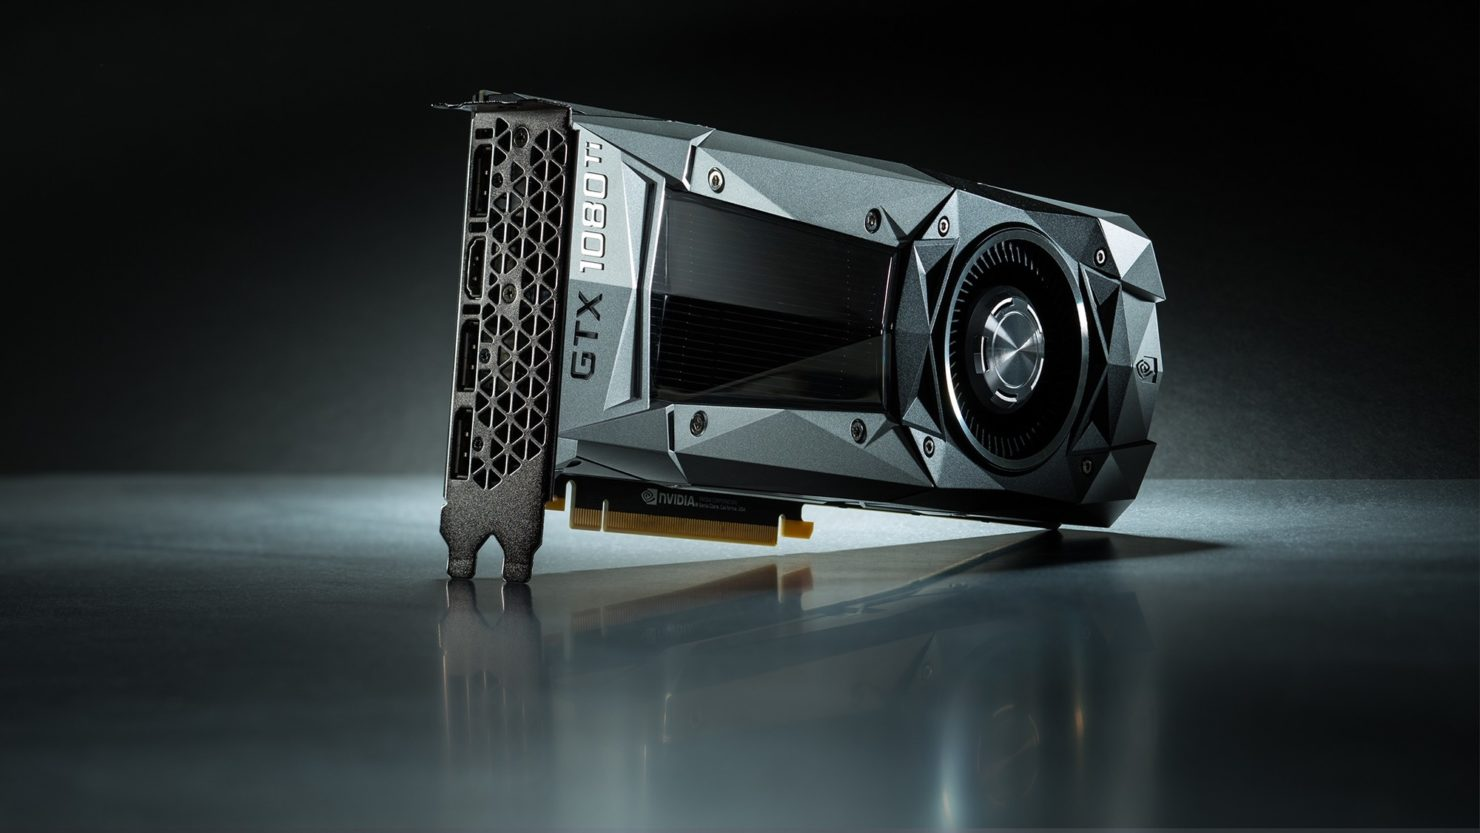 nvidia-geforce-gtx-1080-ti,-the-ultimate-pascal-gaming-graphics-card,-might-make-a-comeback,-freshly-produced-gpu-batch-spotted